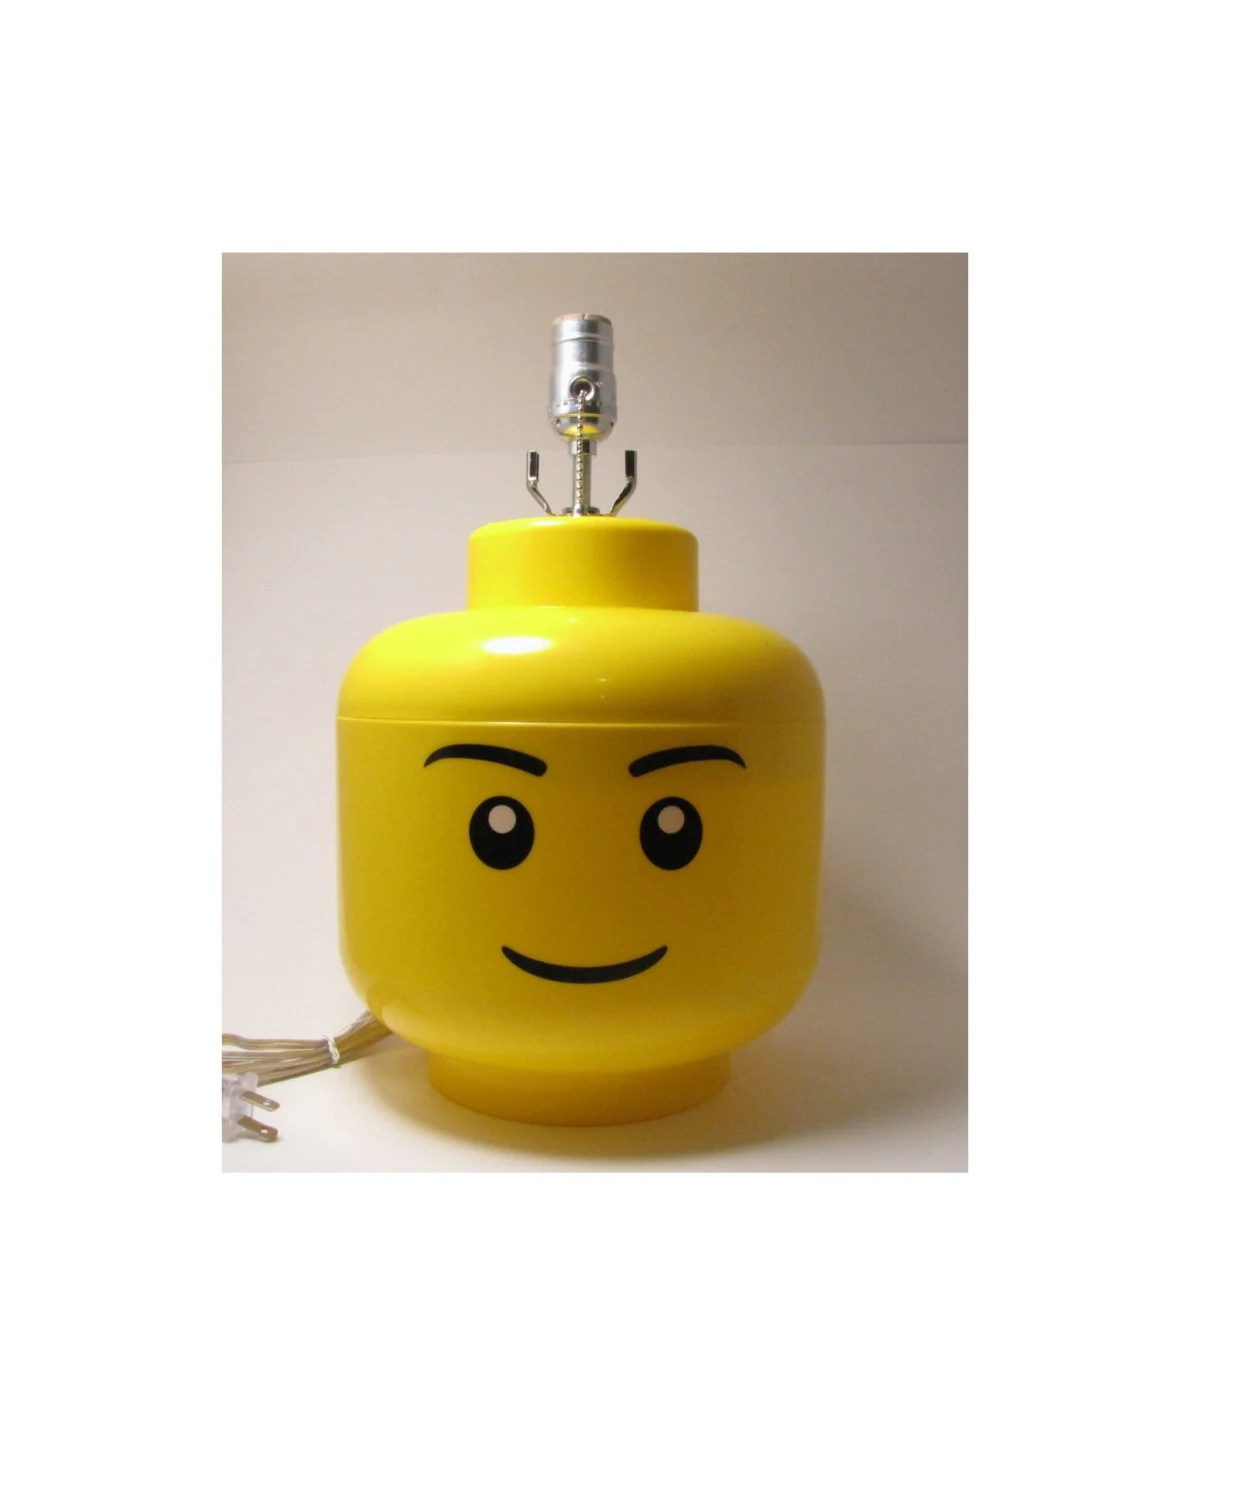 Bedside Lamps Big W Large Male Lego Minifigure Head Lamp Perfect Lego Themed